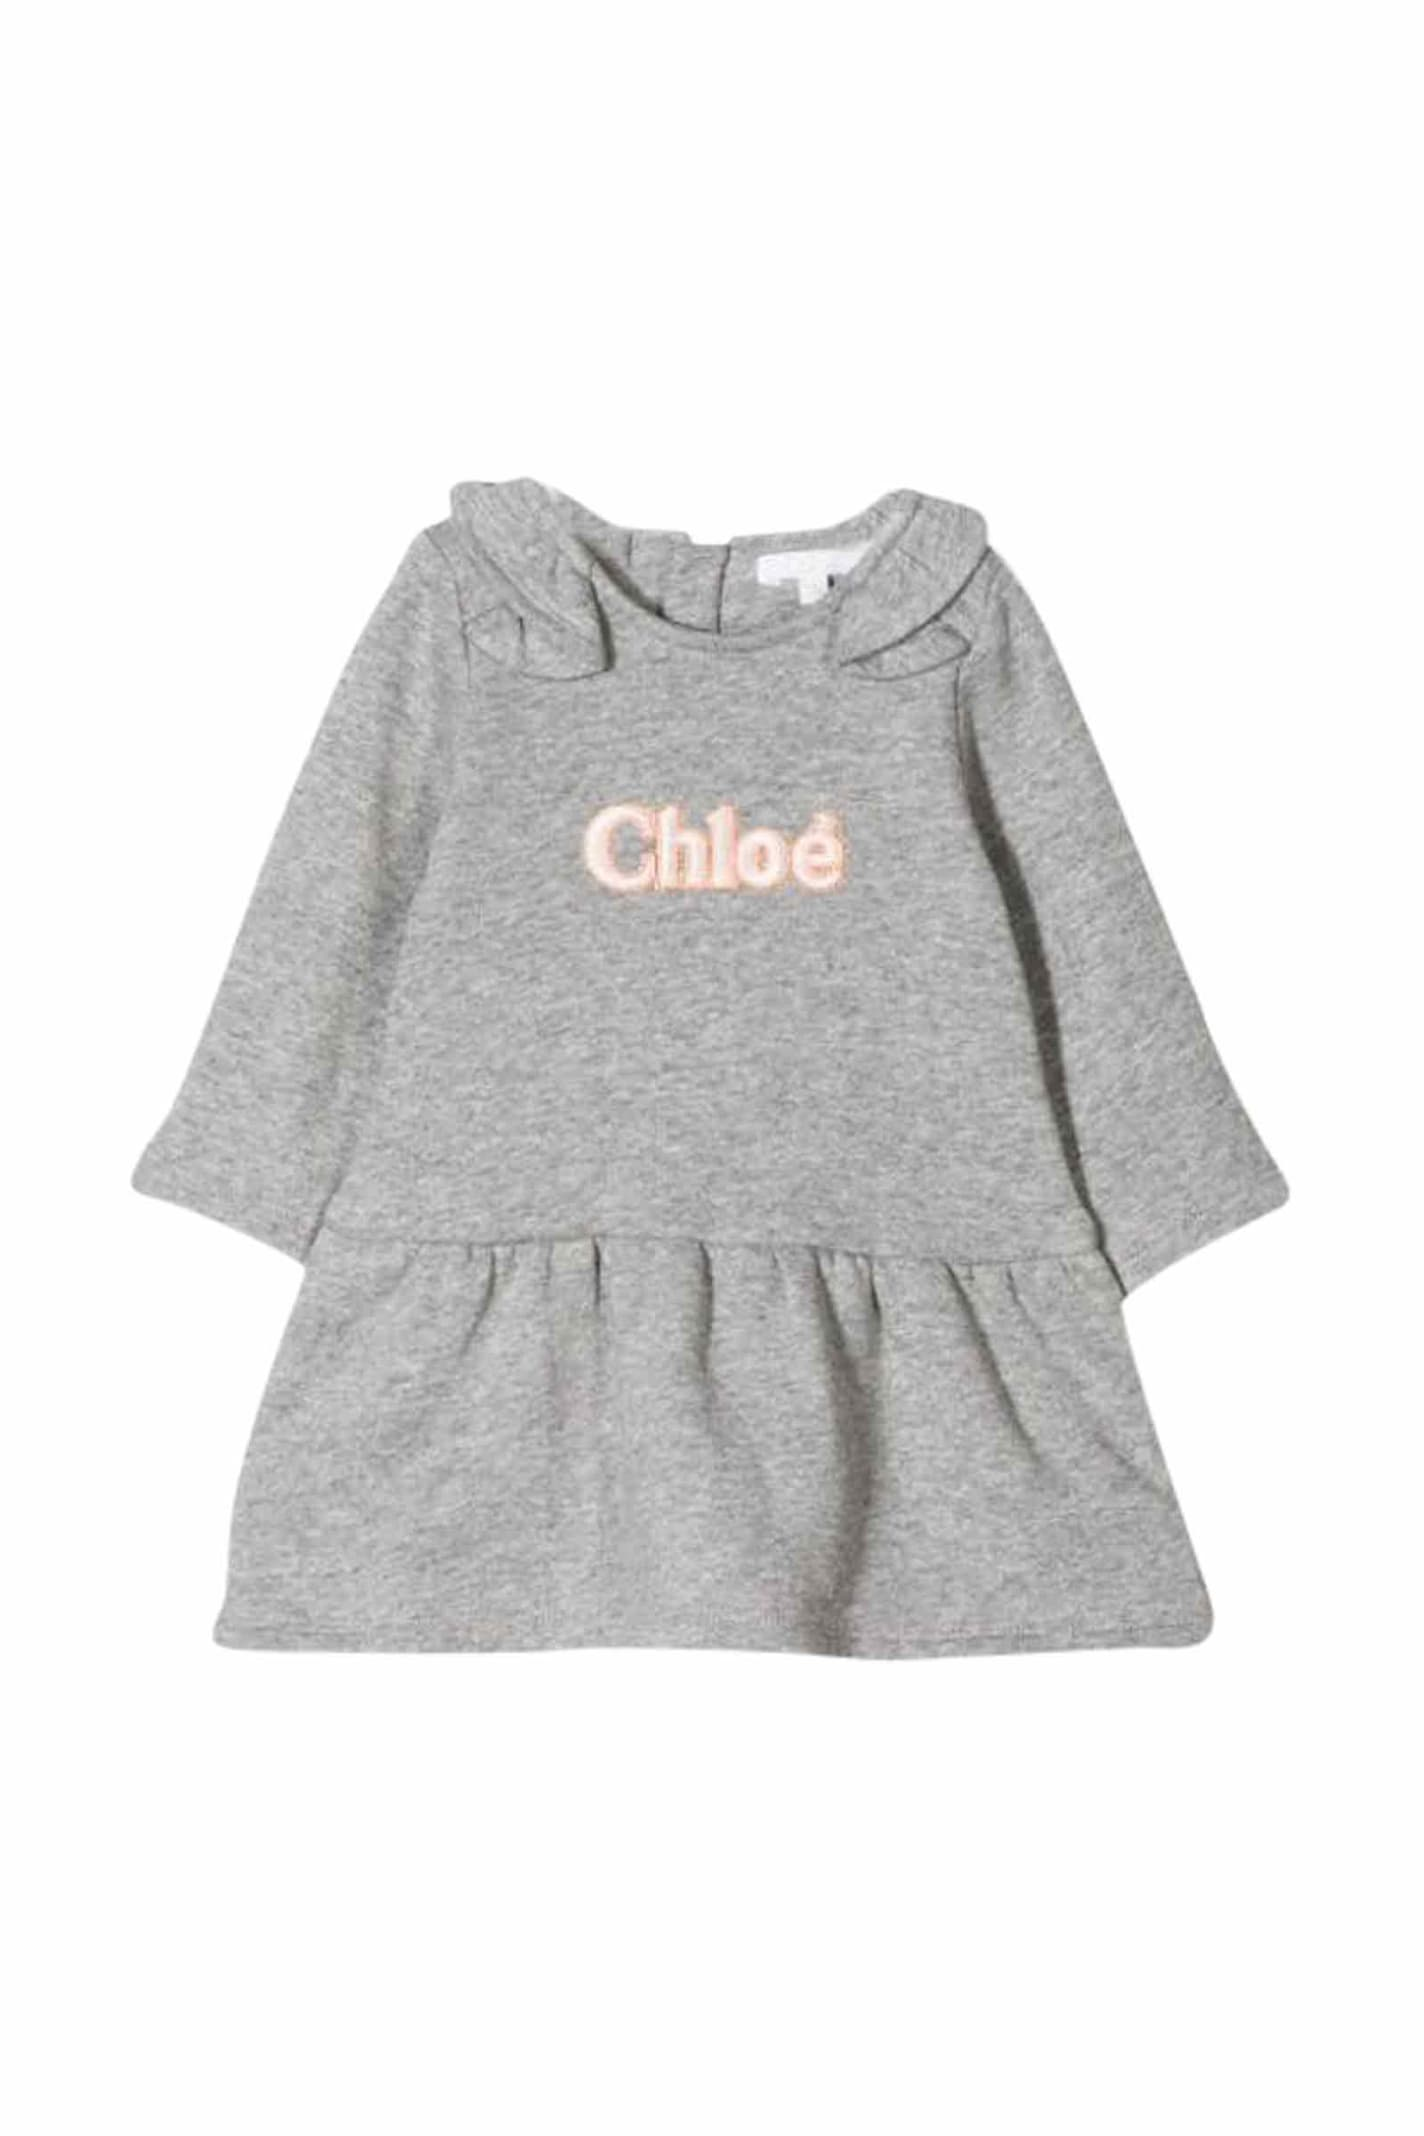 Chloé Embroidery Dress